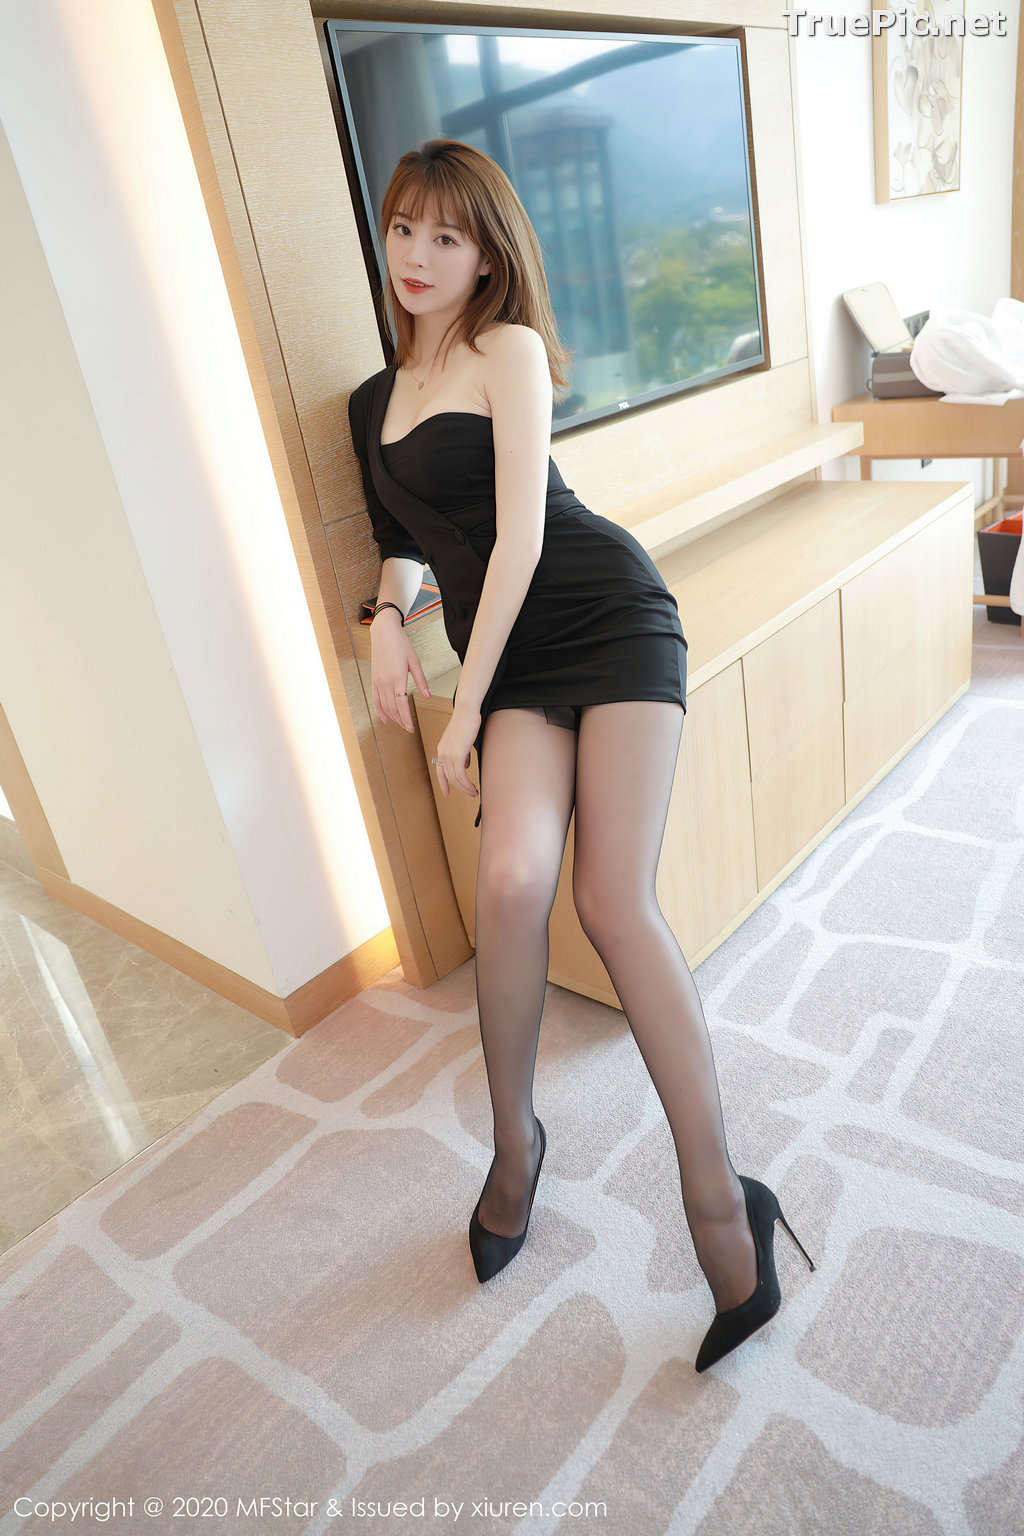 Image MFStar Vol.405 - Chinese Model - Yoo优优 - Hot Woman in Black - TruePic.net - Picture-9